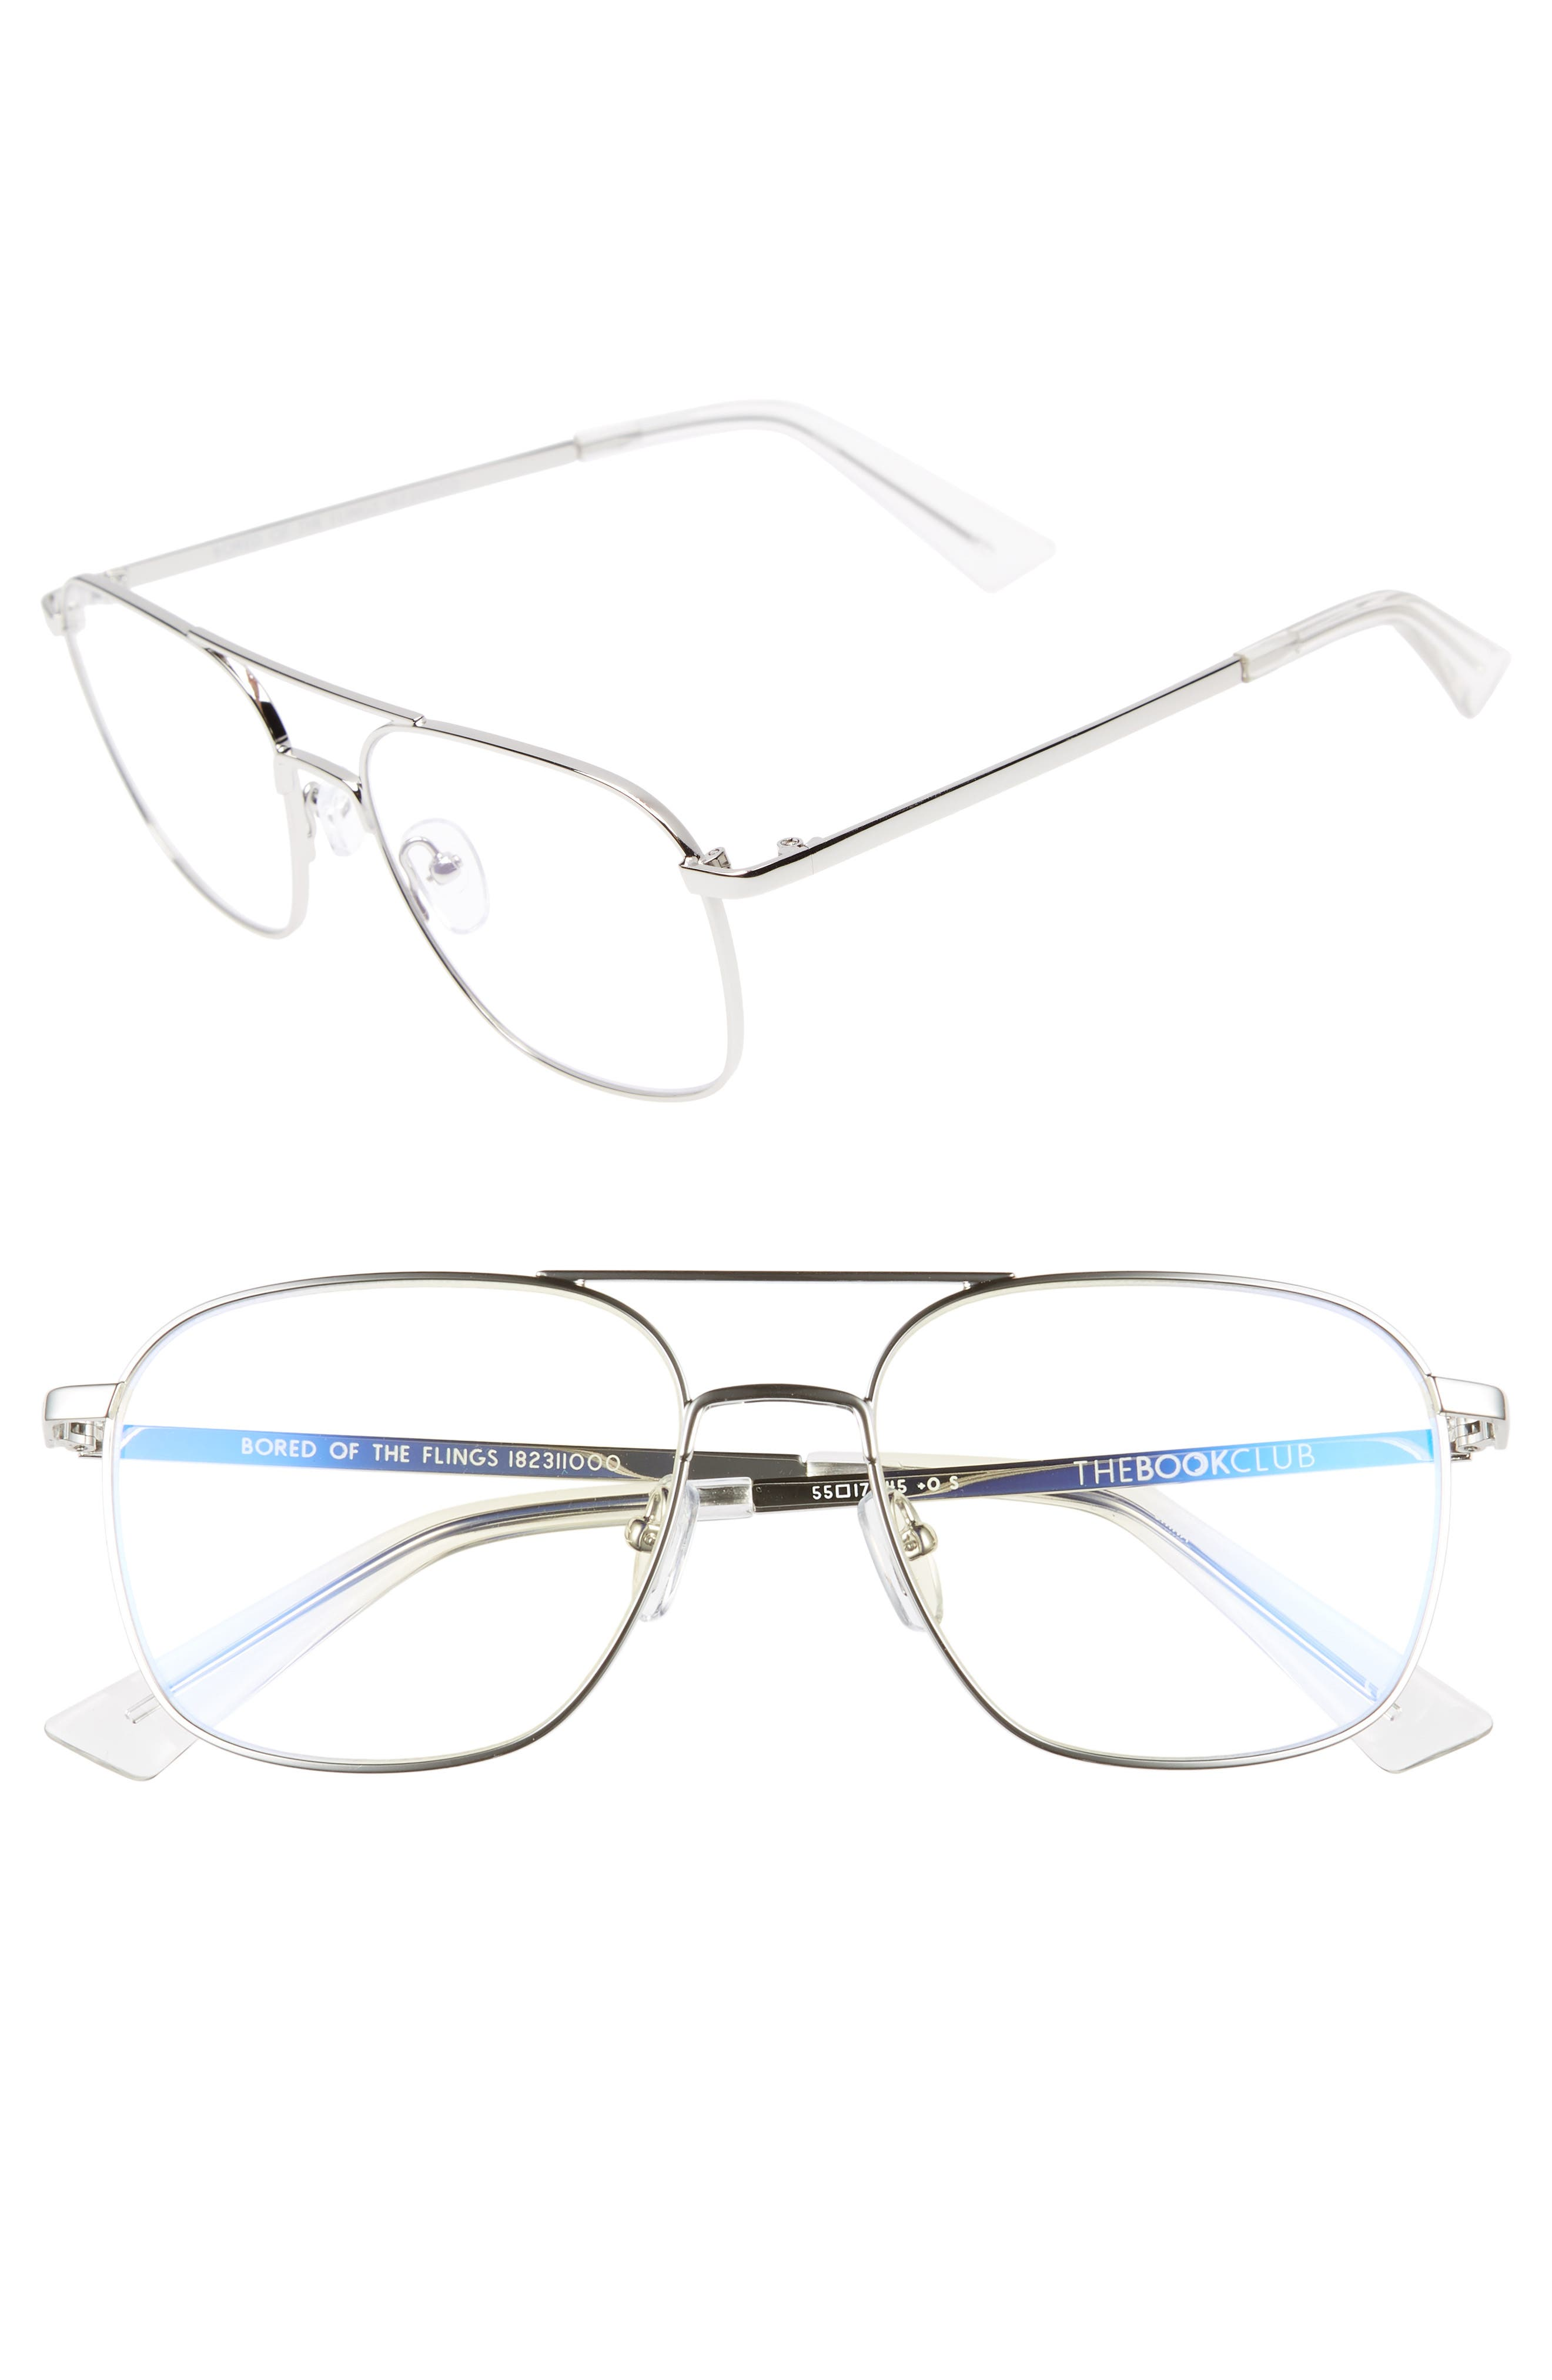 Bored of the Flings 55mm Reading Glasses,                             Main thumbnail 1, color,                             Silver/ Cellophane